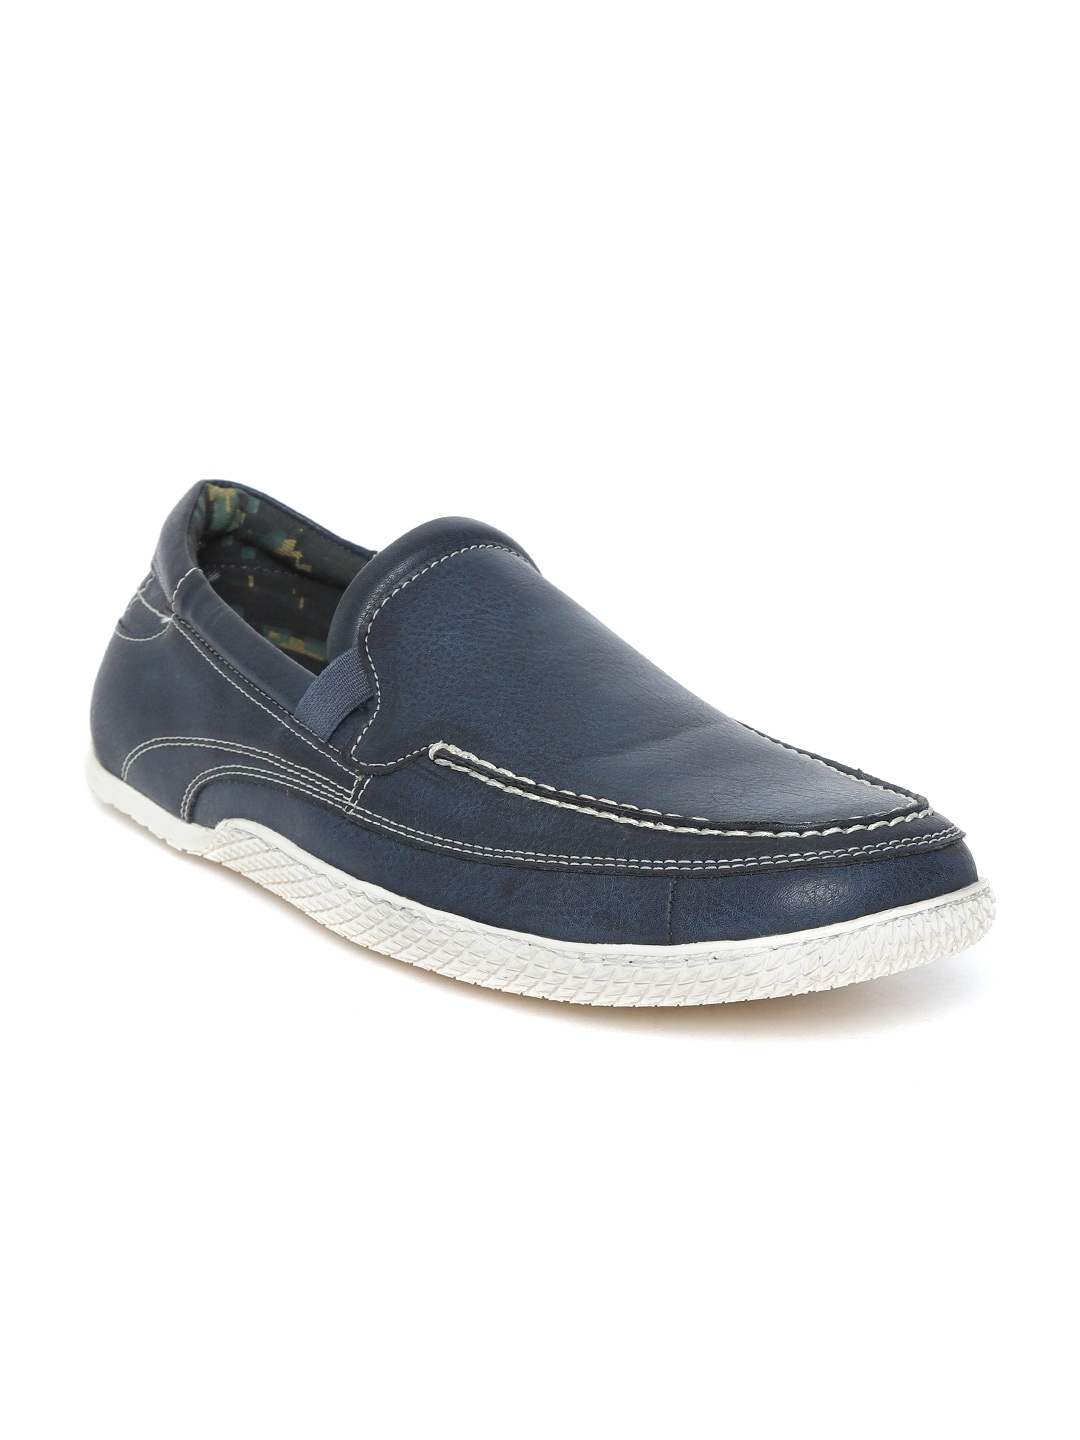 60452bbf0105f4 Loafer Shoes - Buy Latest Loafer Shoes For Men